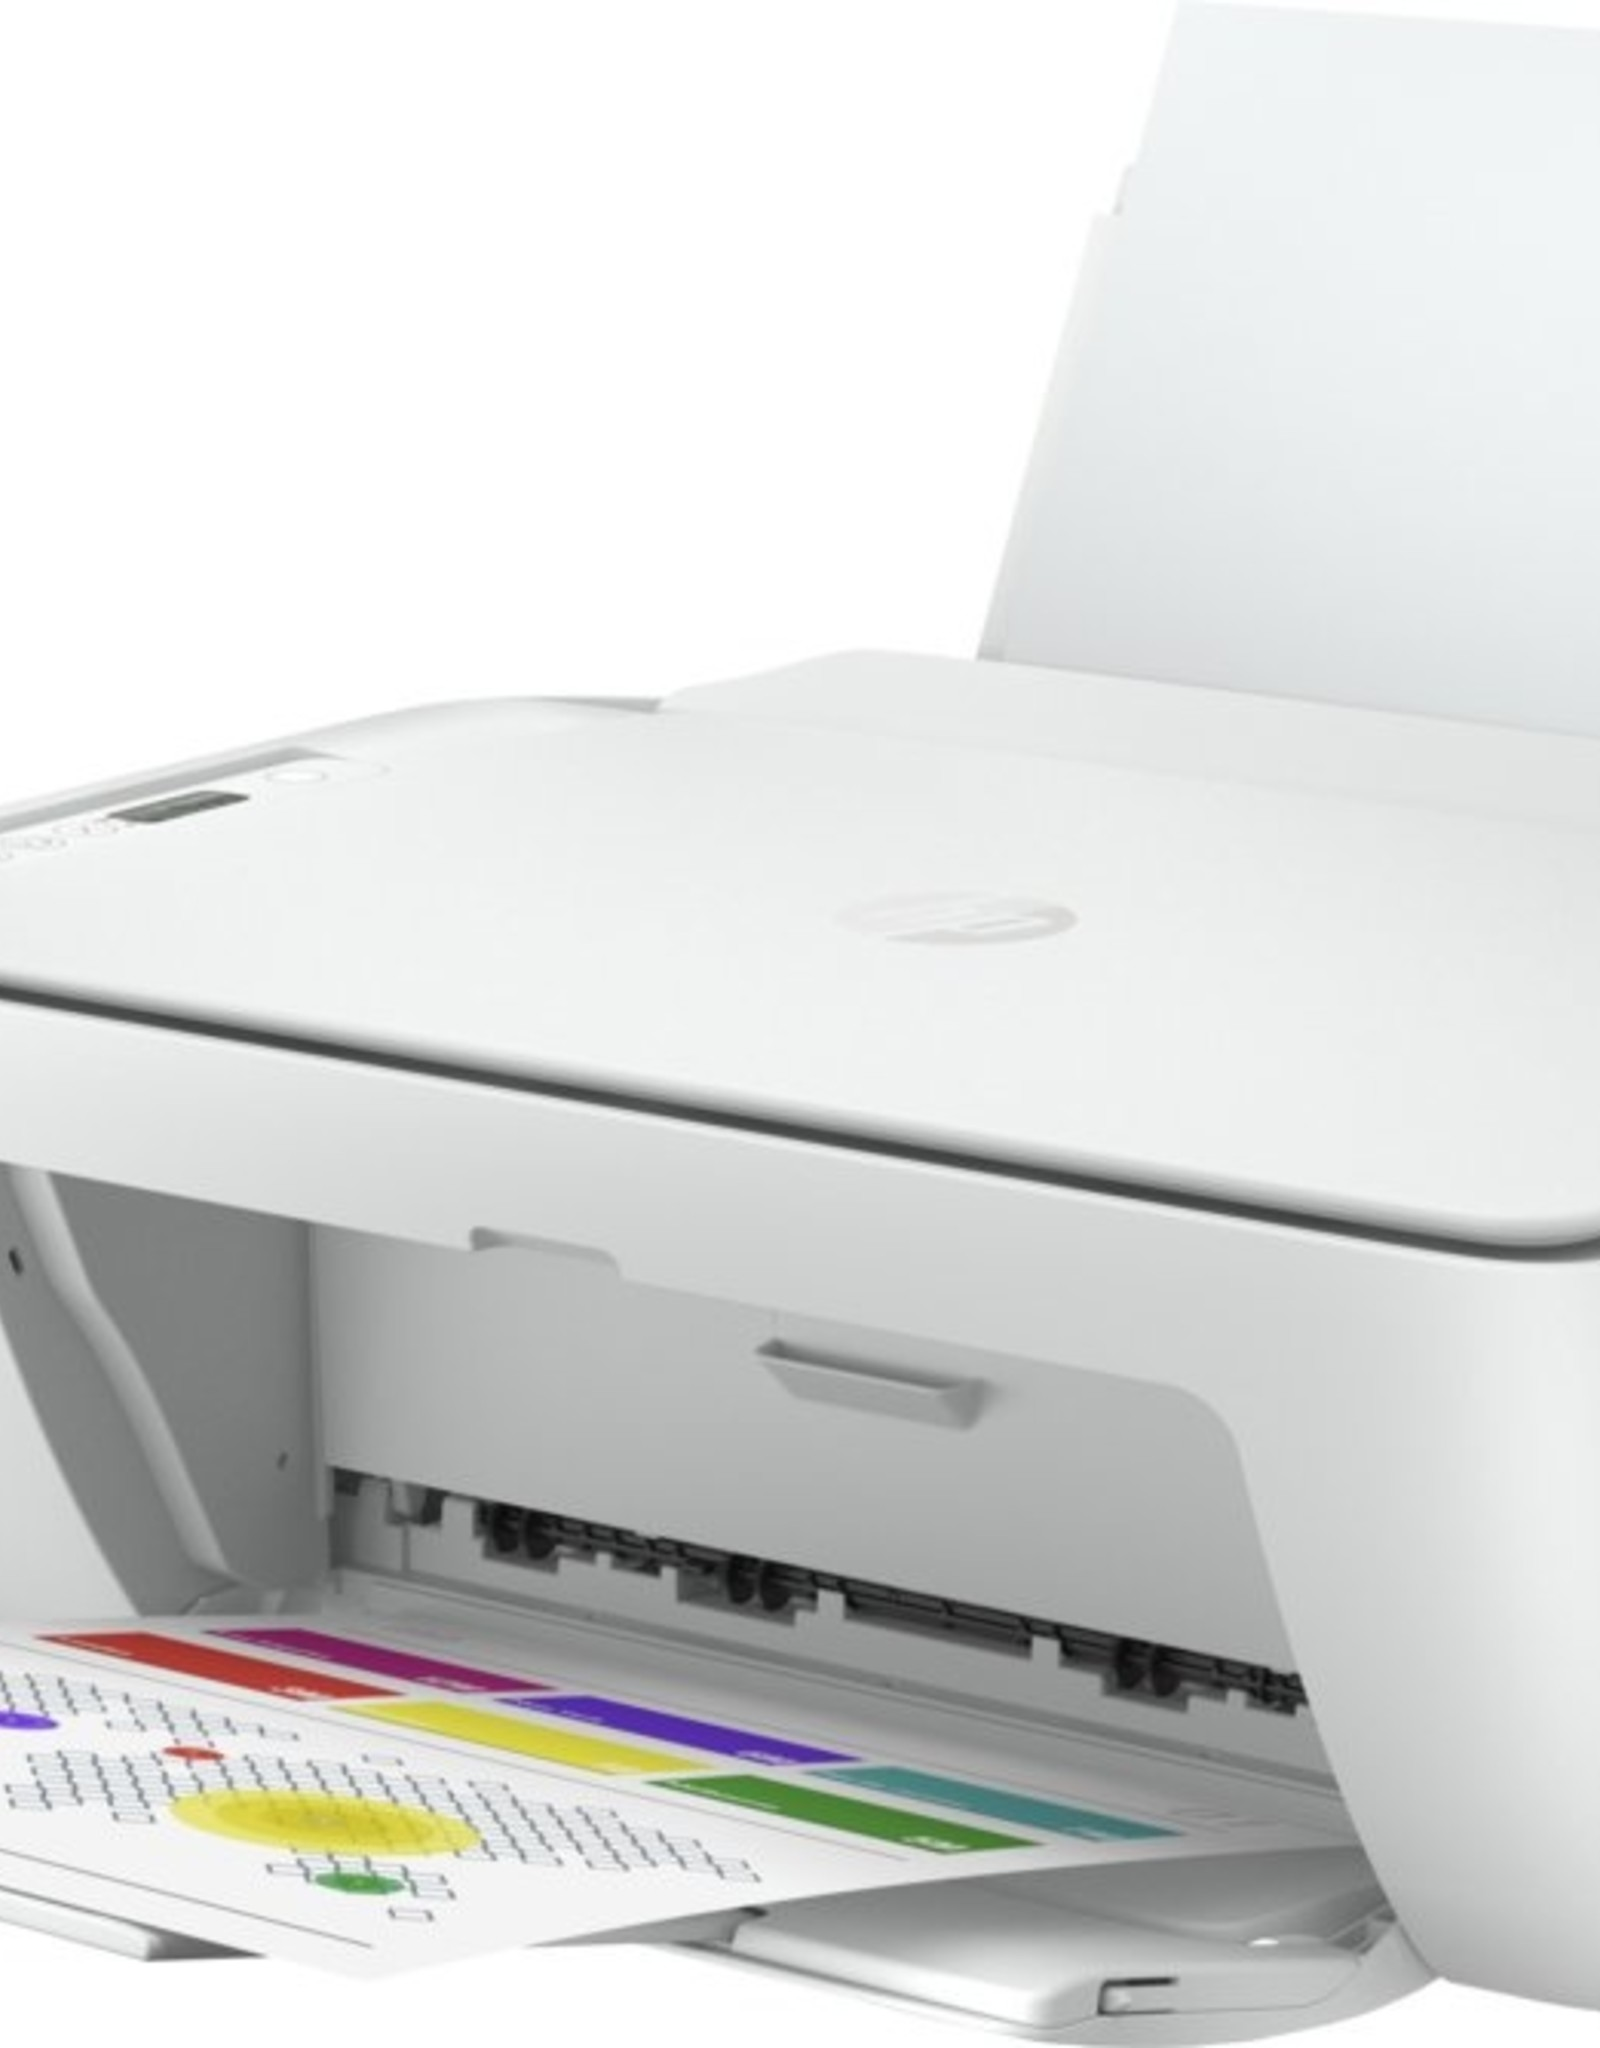 HP Deskjet Printer 2720 AiO / Color / WiFi (refurbished)